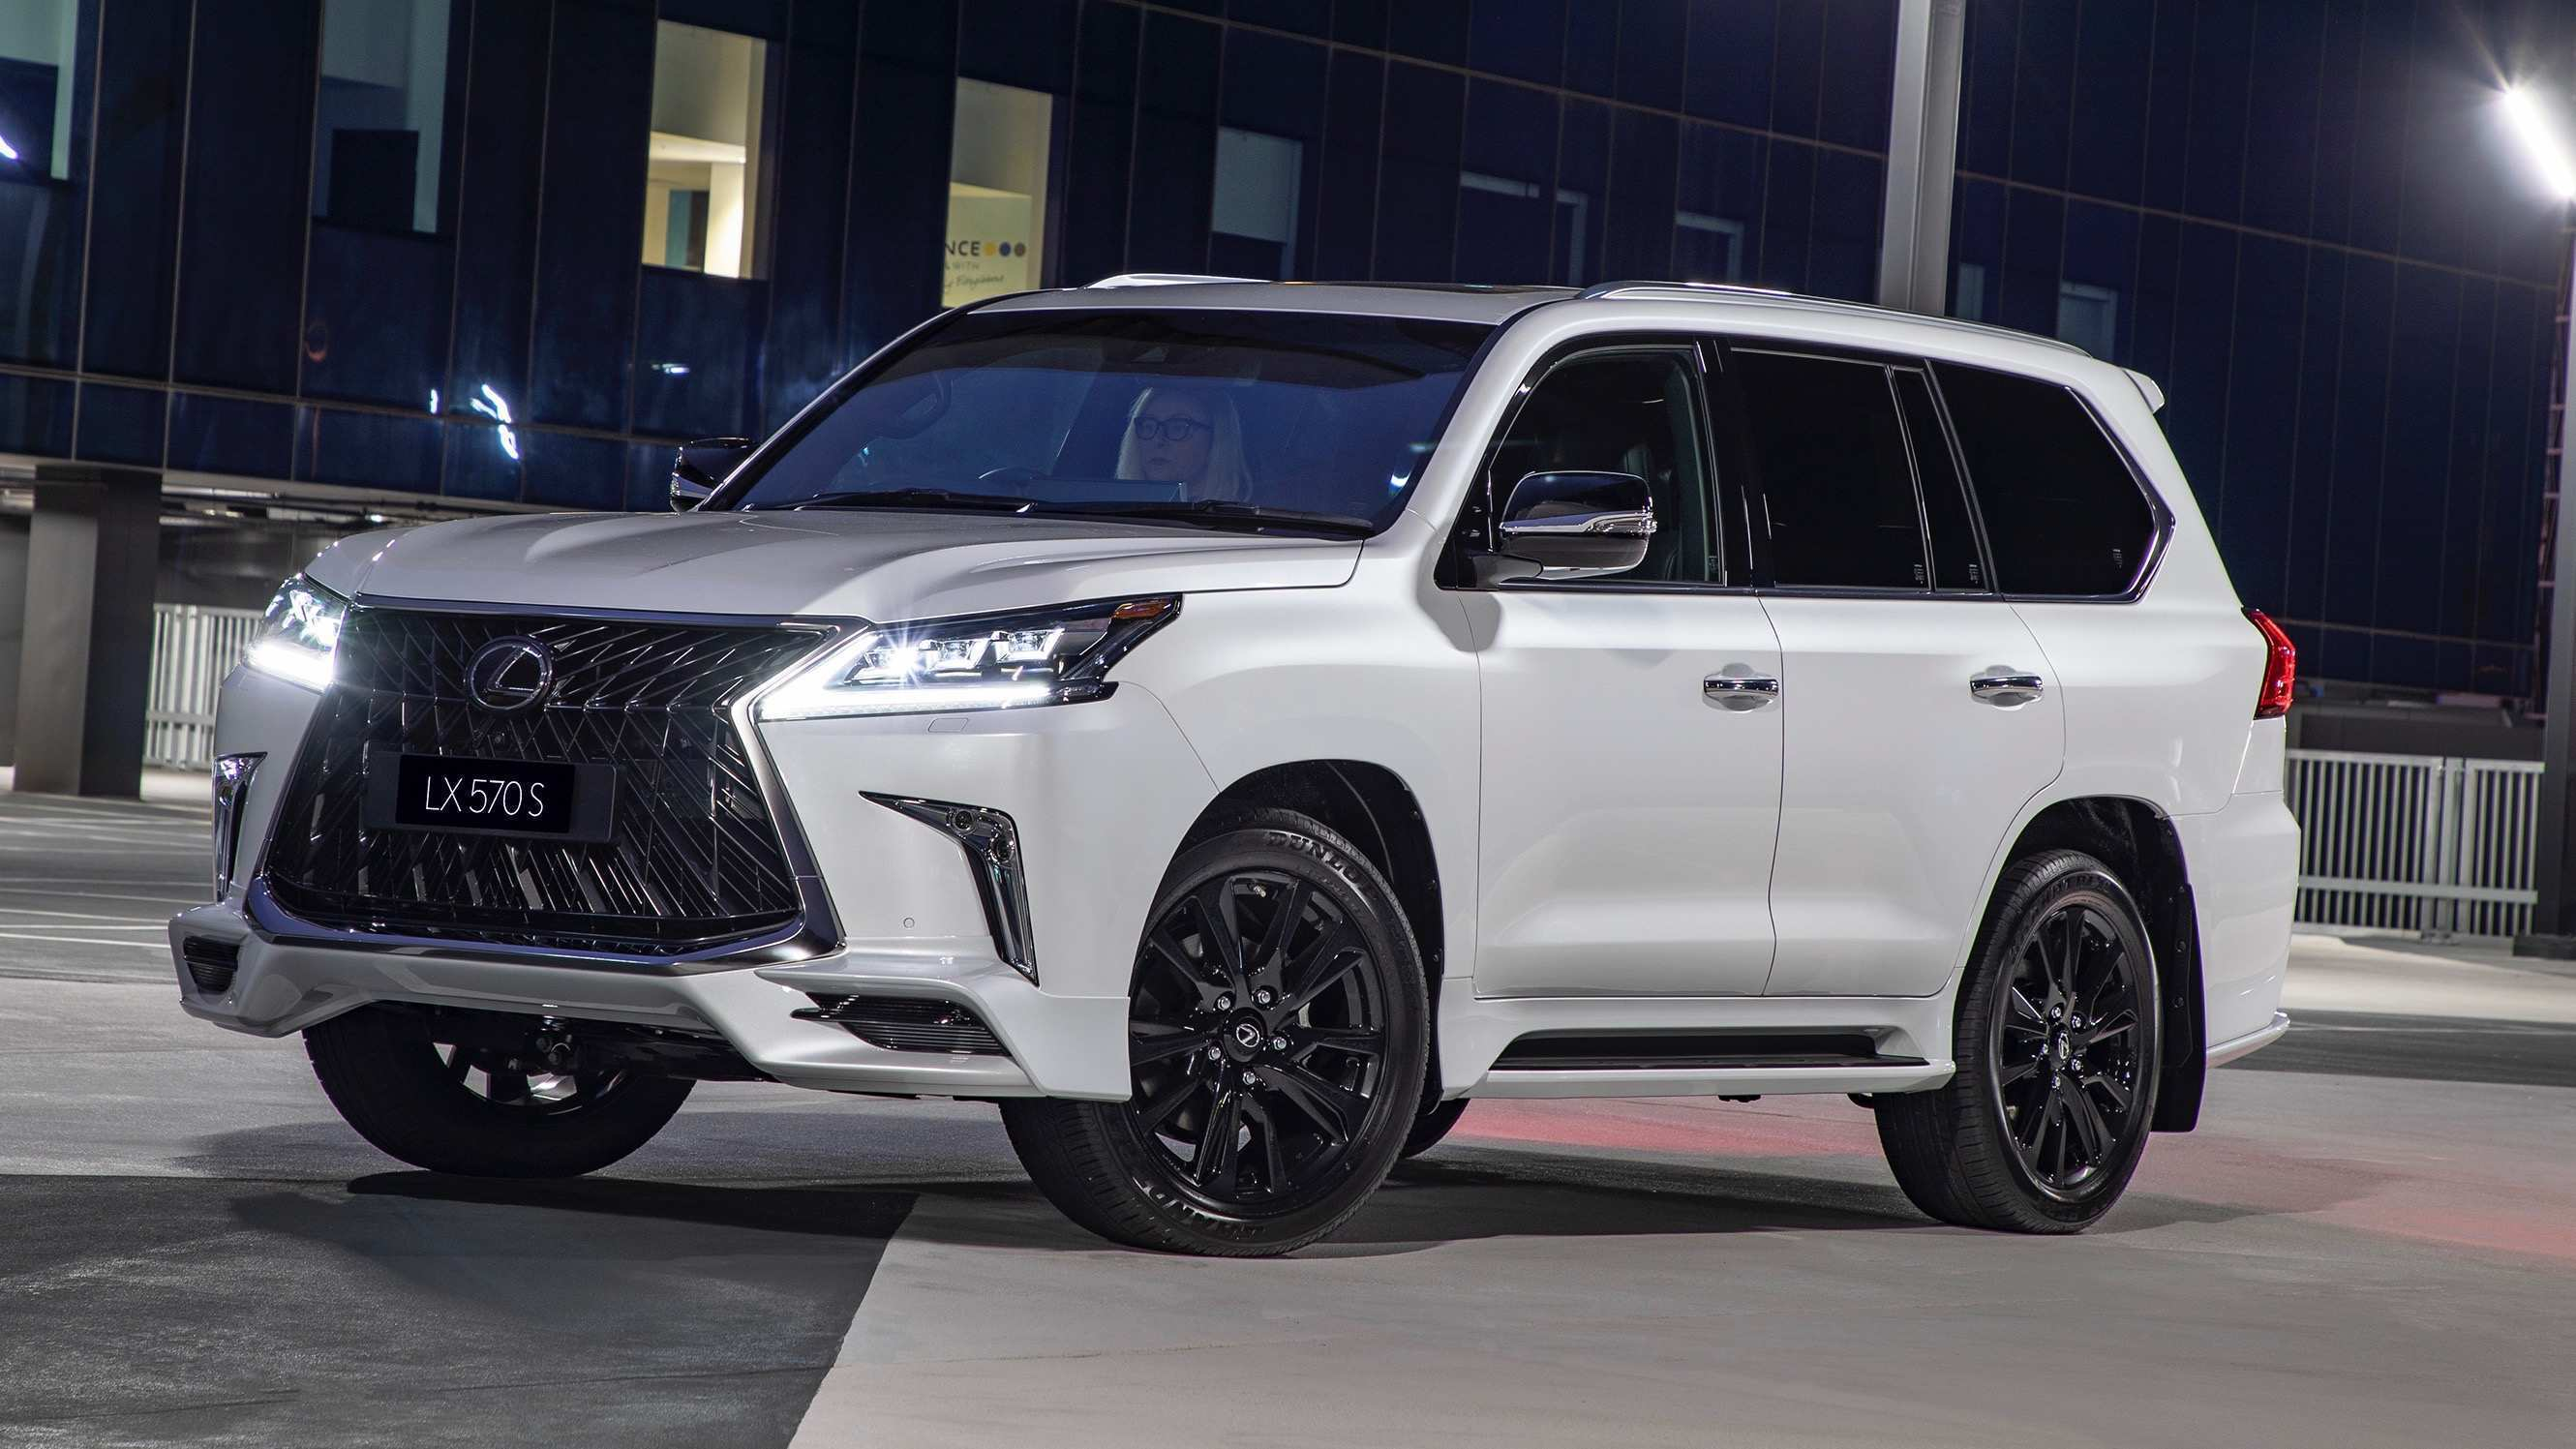 94 Best Review 2019 Lexus Lx 570 Exterior and Interior with 2019 Lexus Lx 570